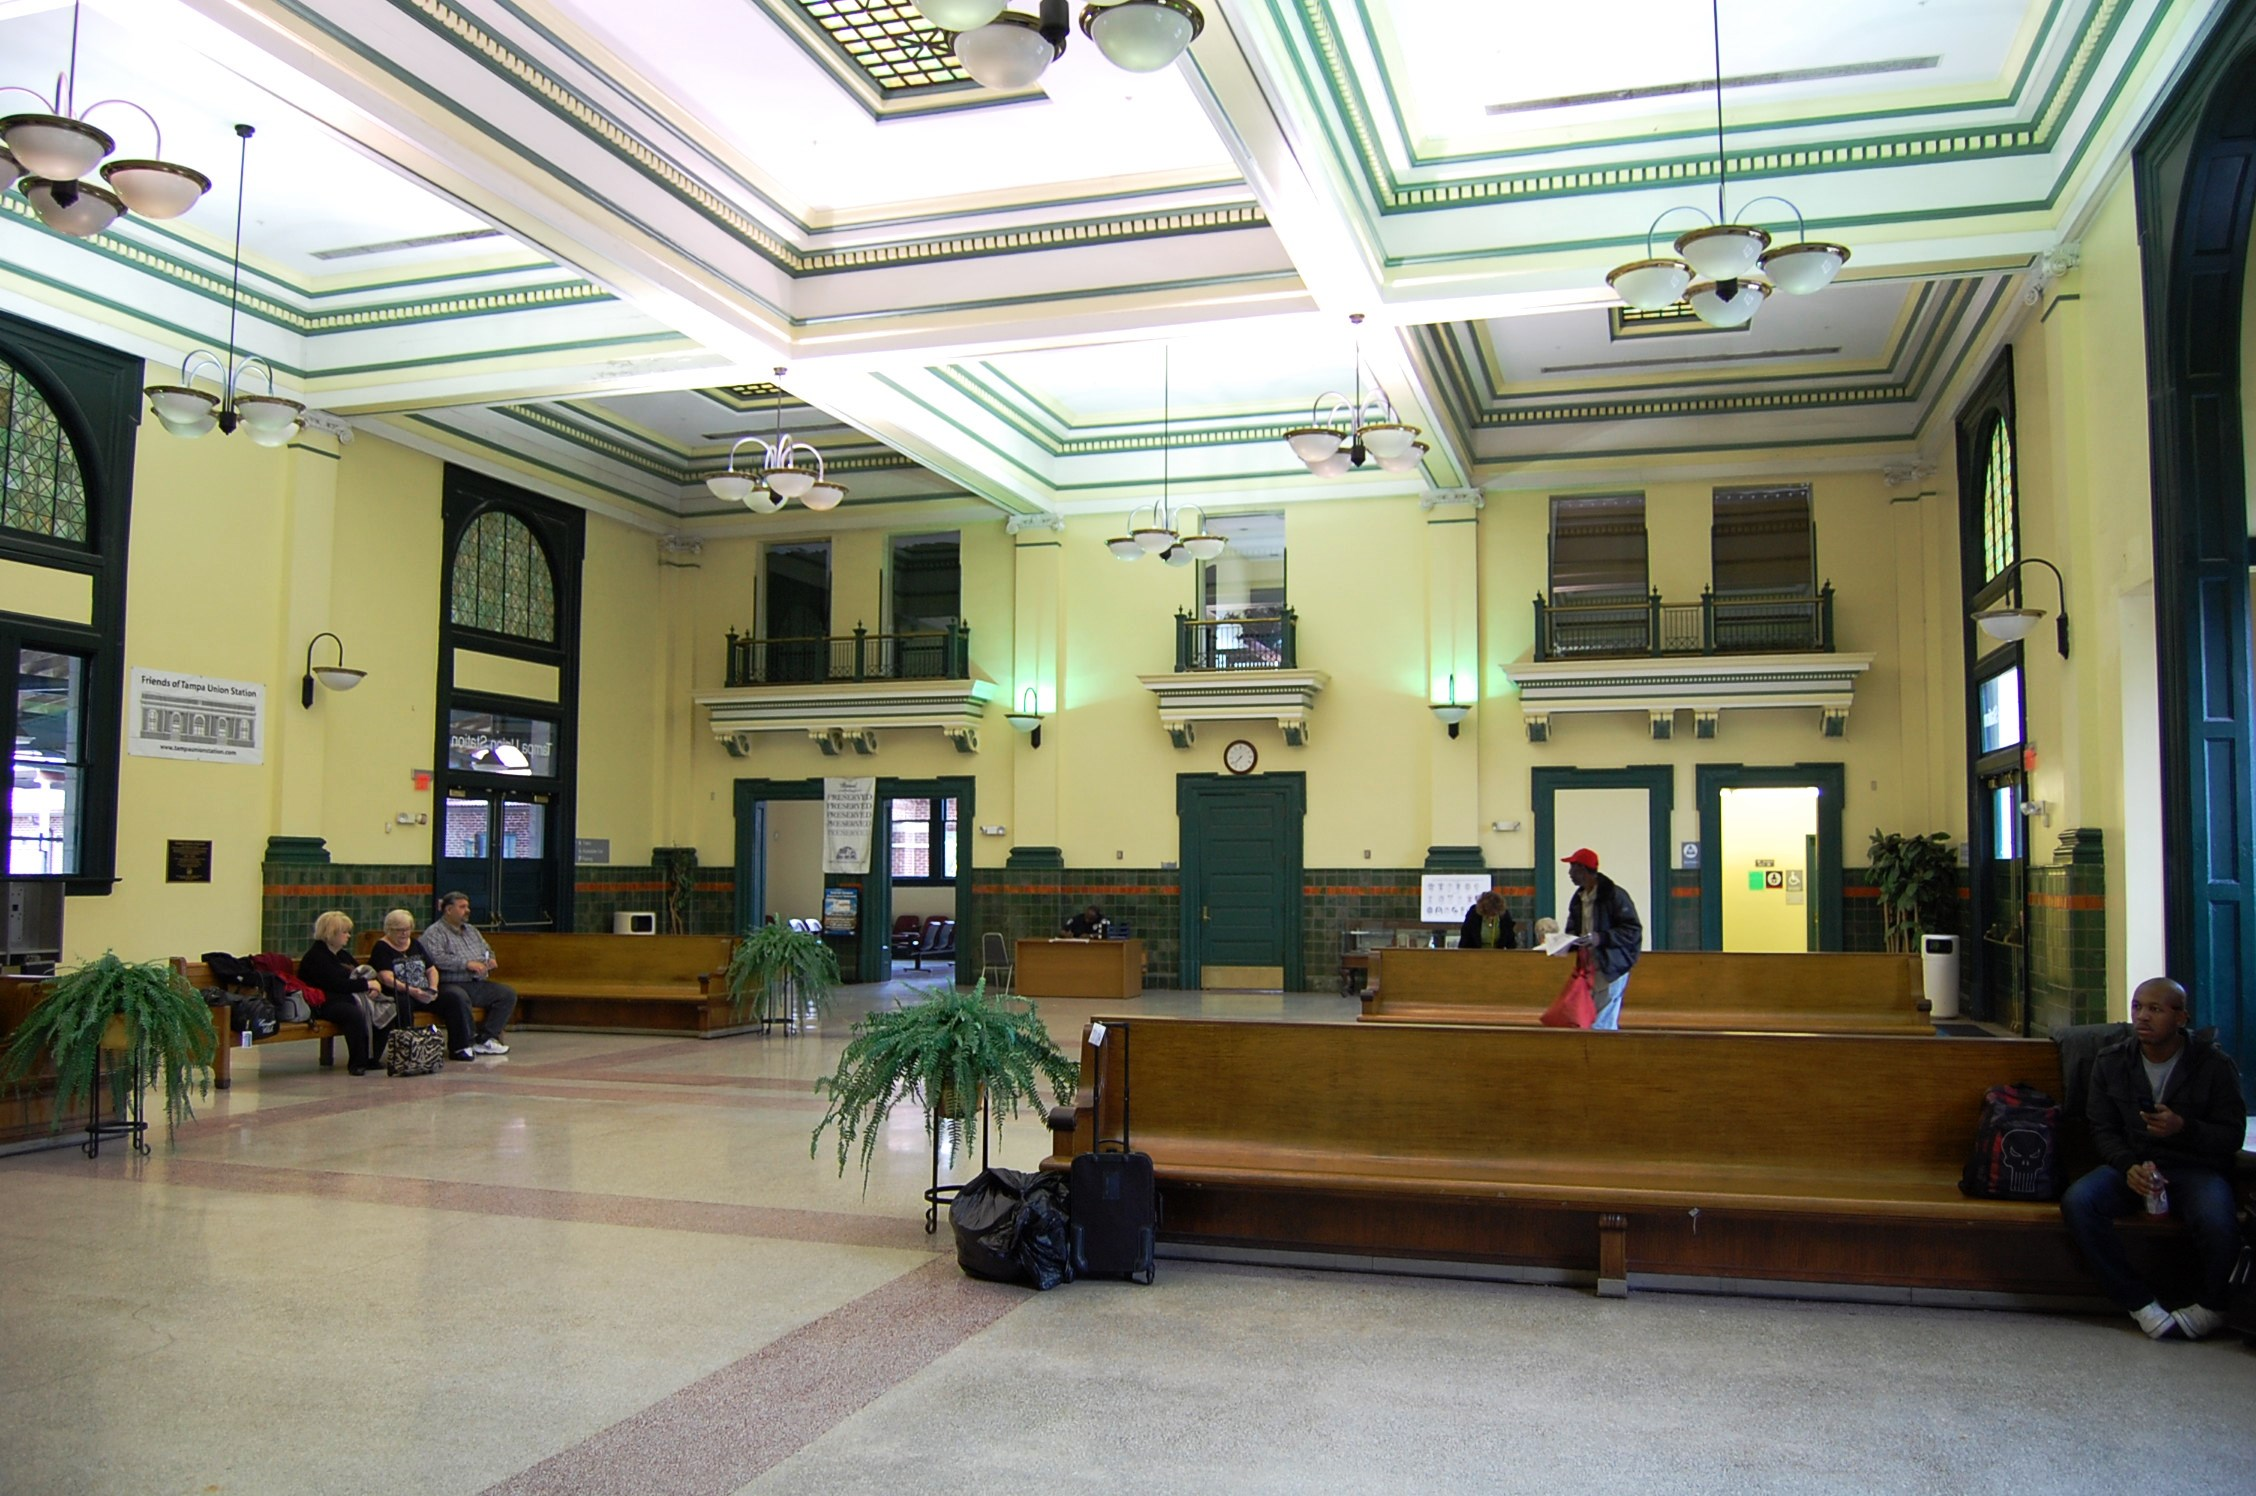 Interior of Tampa Union Station. Courtesy of Friends of Tampa Union Station.